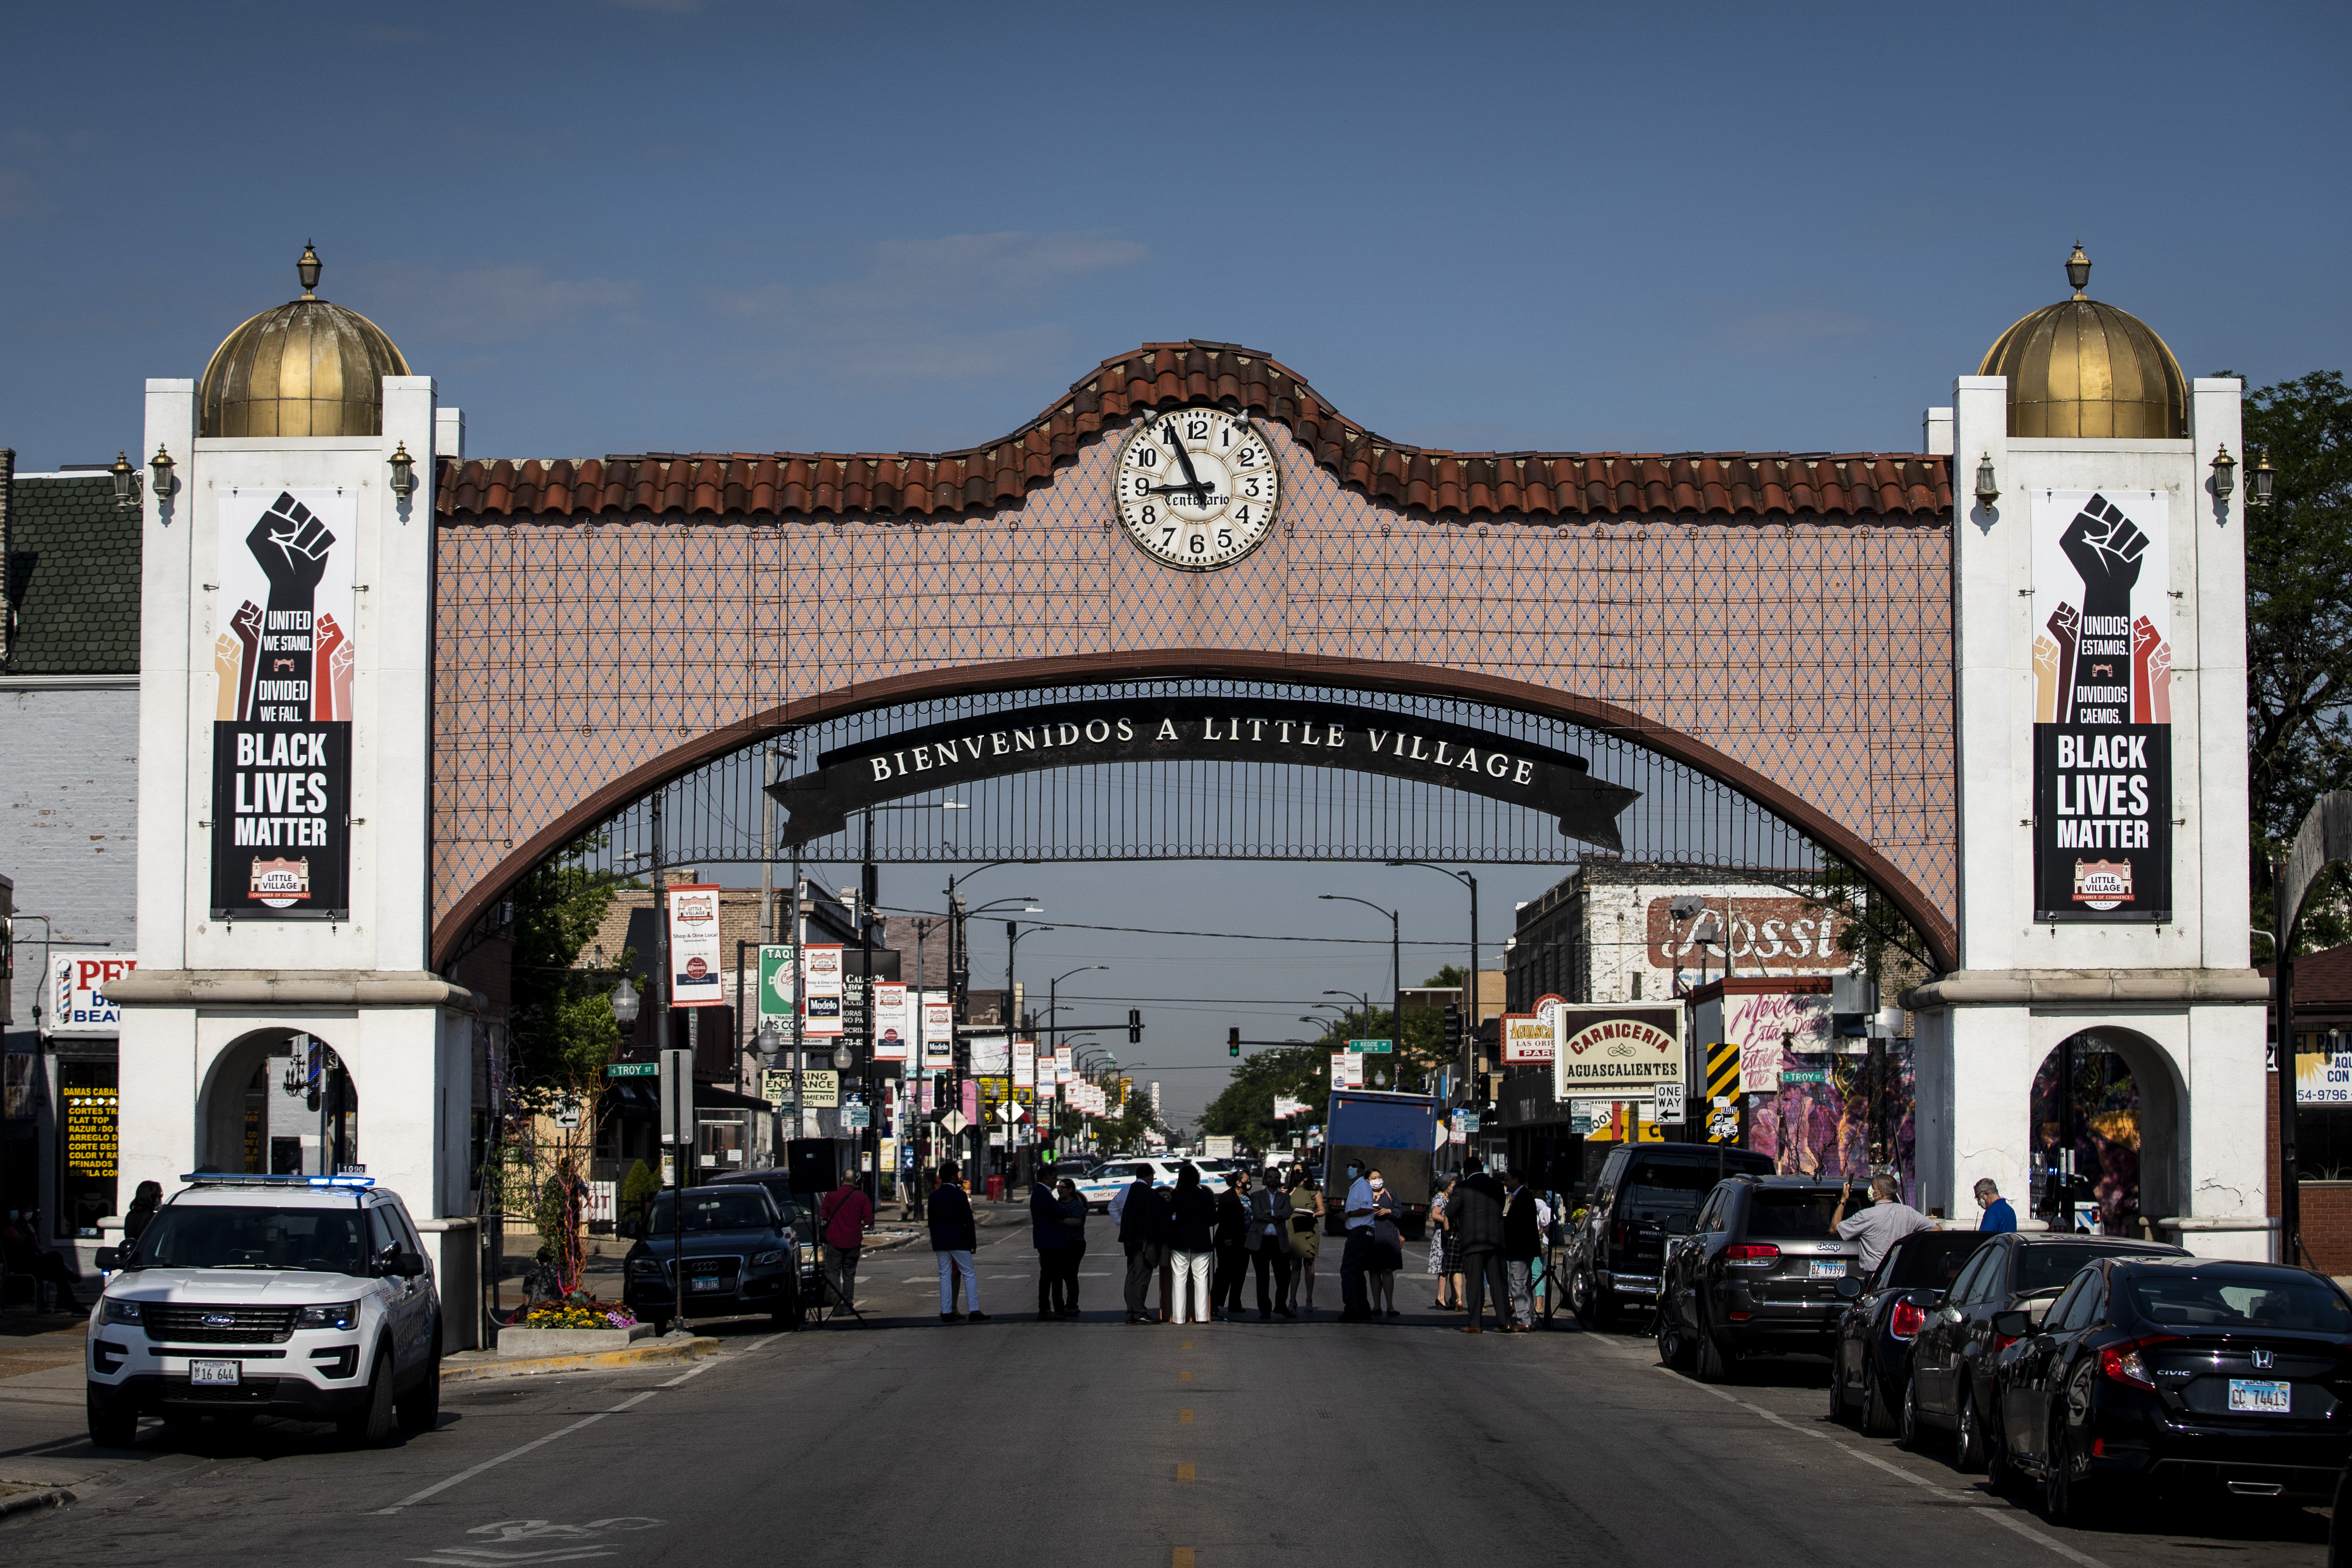 The Little Village Chamber of Commerce unveils four Black Lives Matters banners, displayed on the Little Village neighborhood arch on 26th Street between Troy and Albany, Wednesday morning, June 17, 2020. | Ashlee Rezin Garcia/Sun-Times